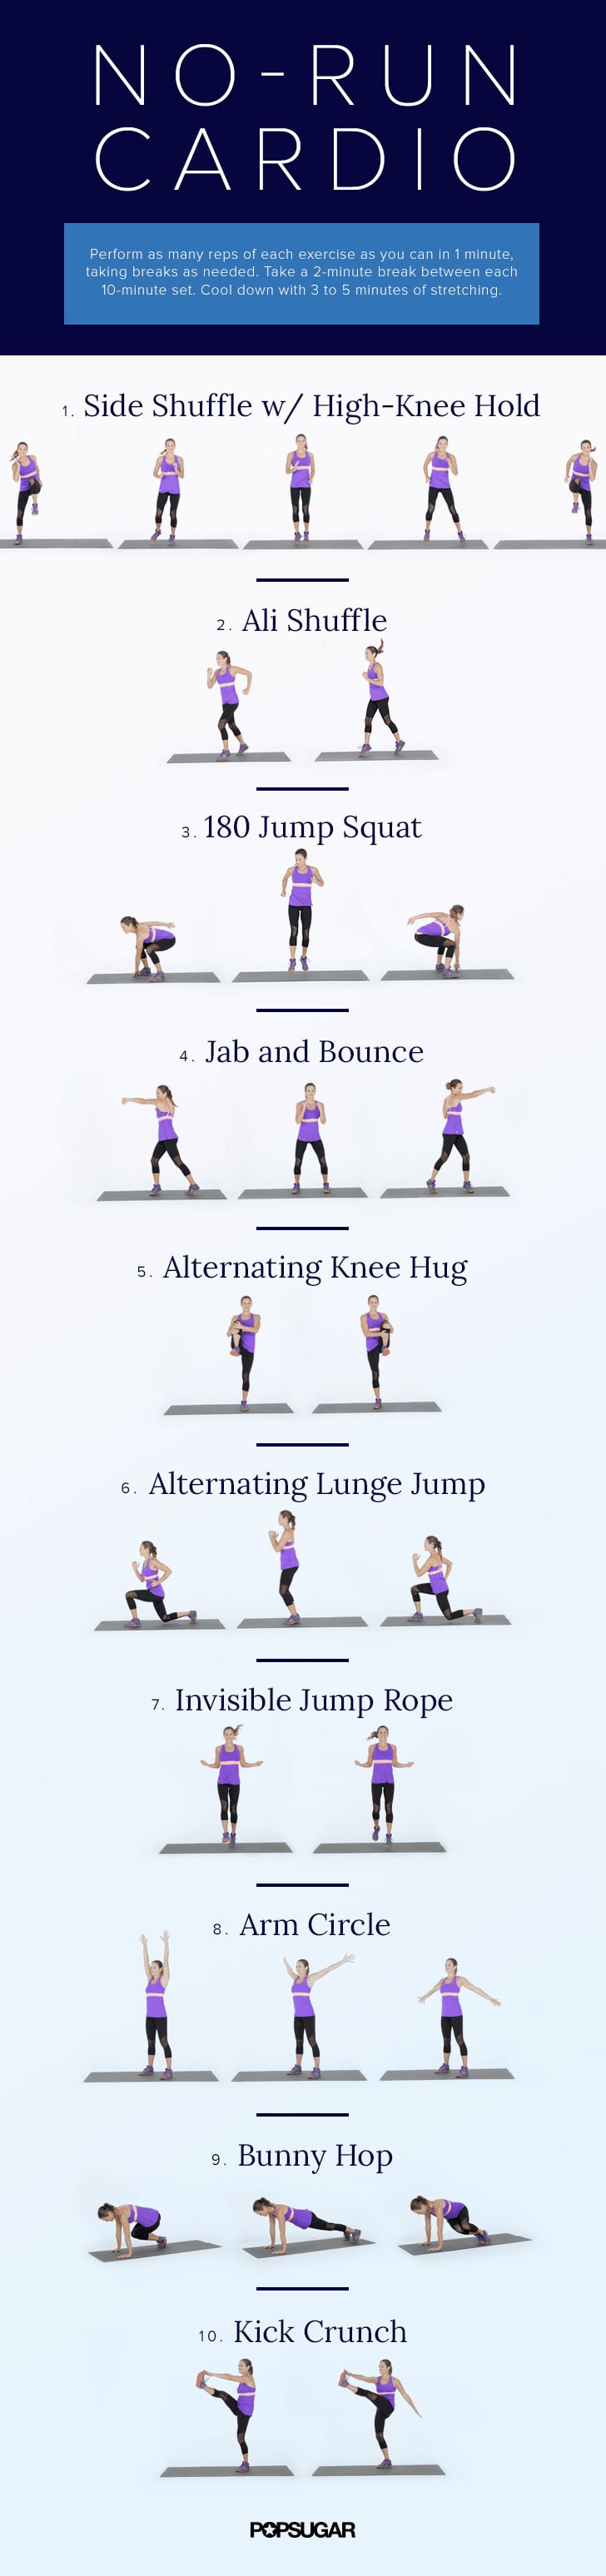 Cardio Workouts You Can Do at Home